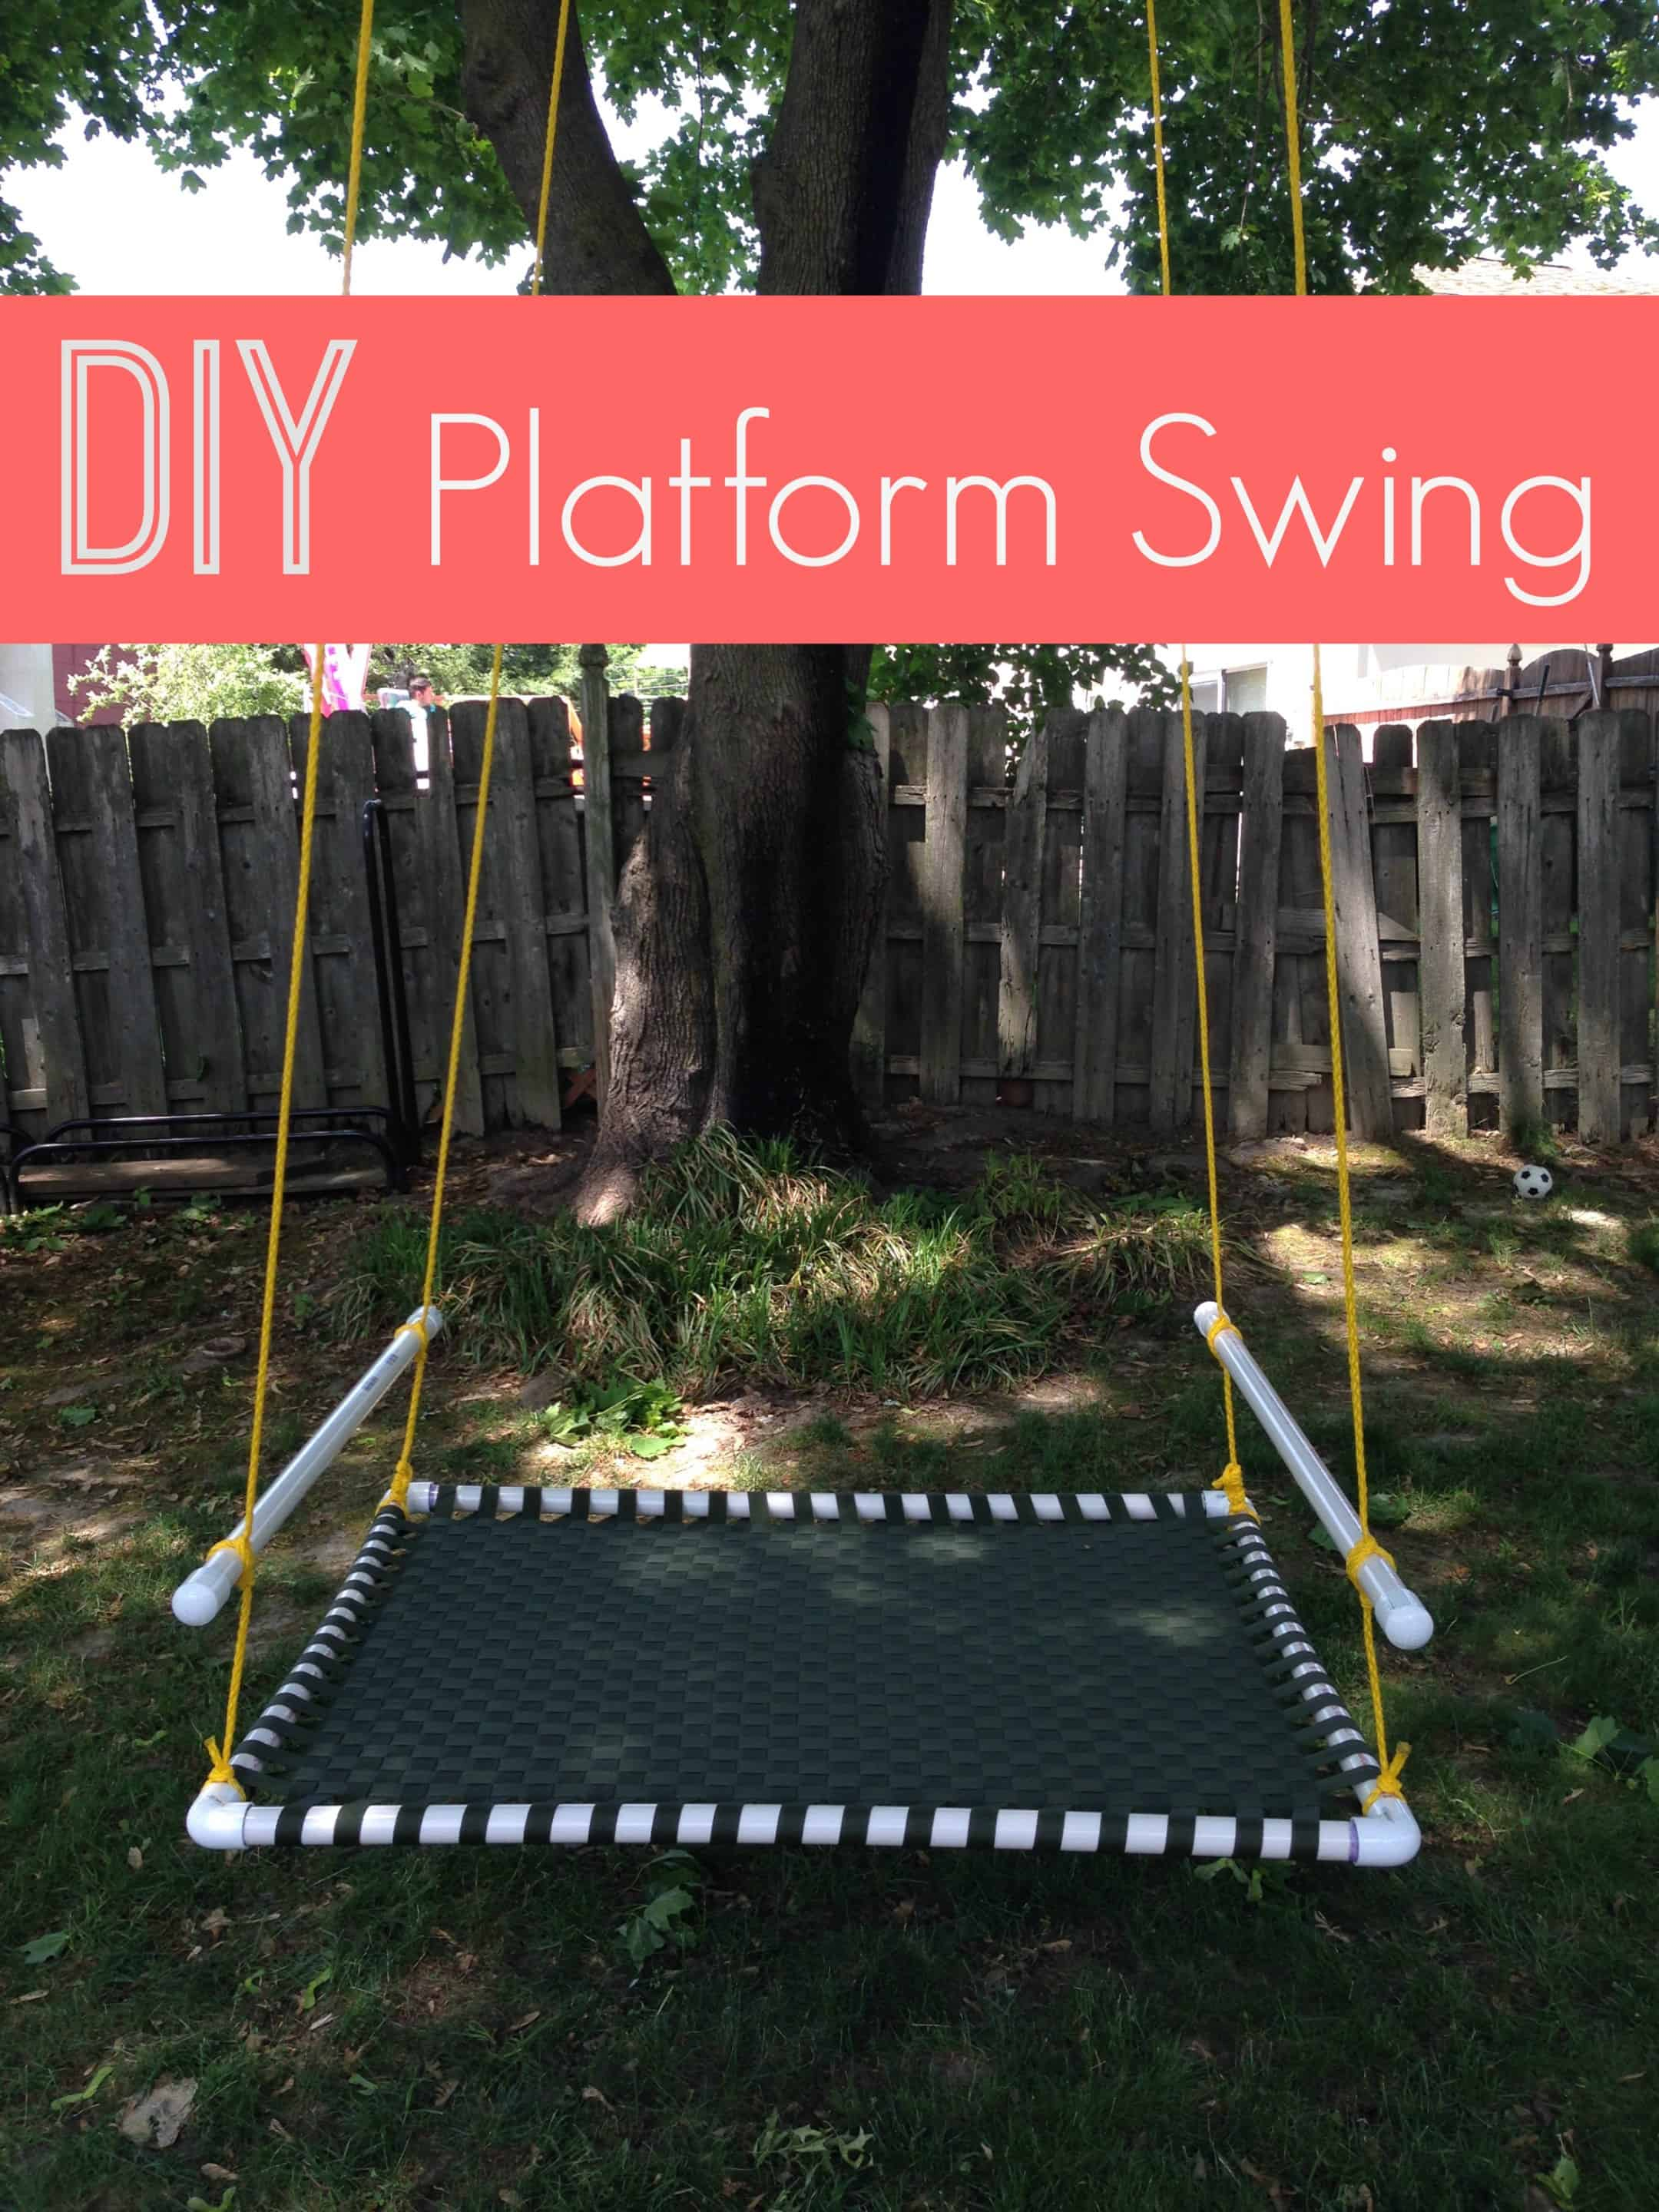 I love this DIY platform swing (via The Naughty Mommy). My kids would have a blast. So many great ideas for the backyard to keep the kids playing outside!